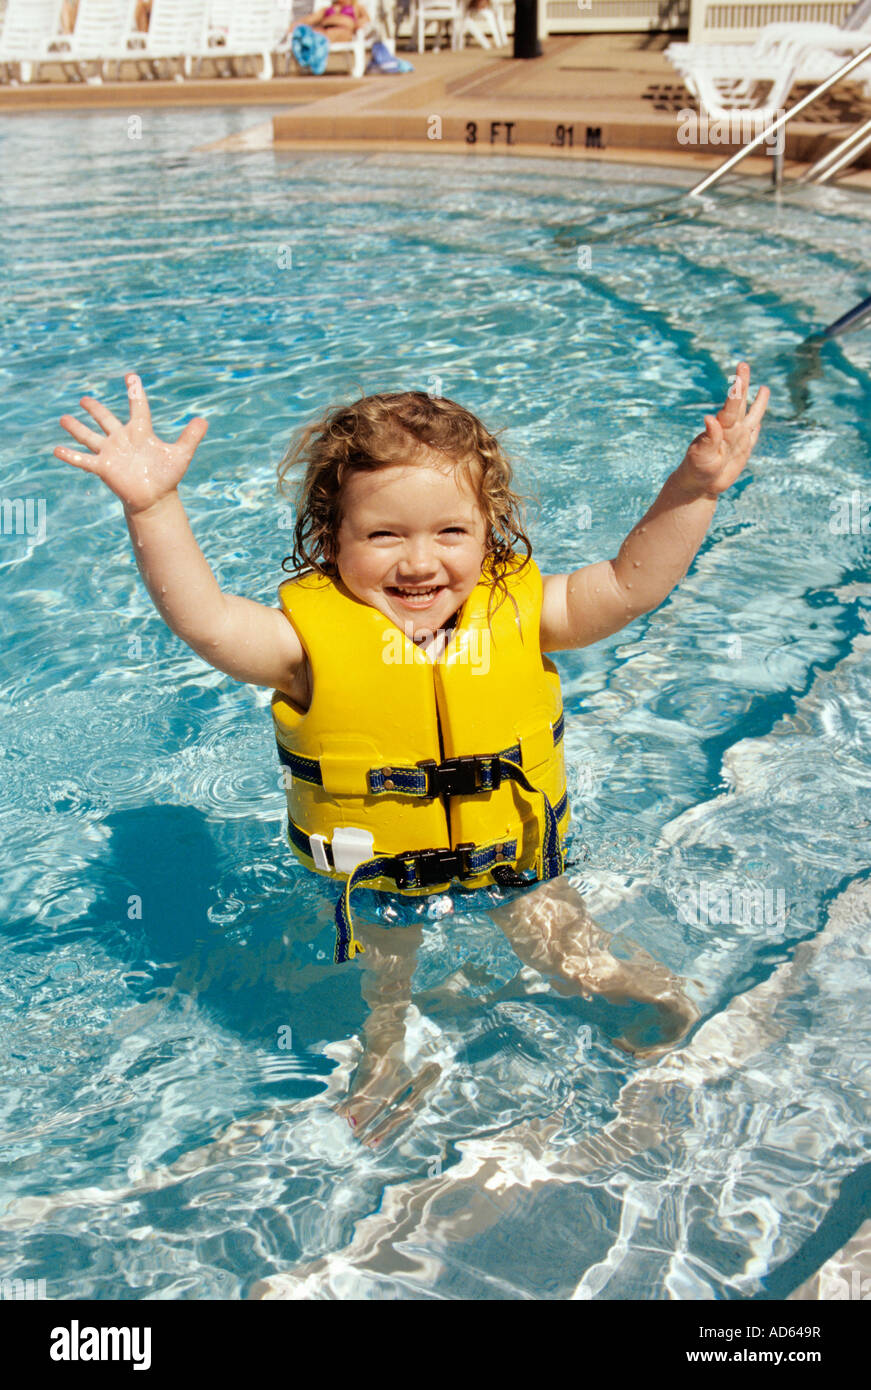 Young Girl In Swimming Pool Wearing Life Vest Stock Photo Royalty Free Image 13316914 Alamy